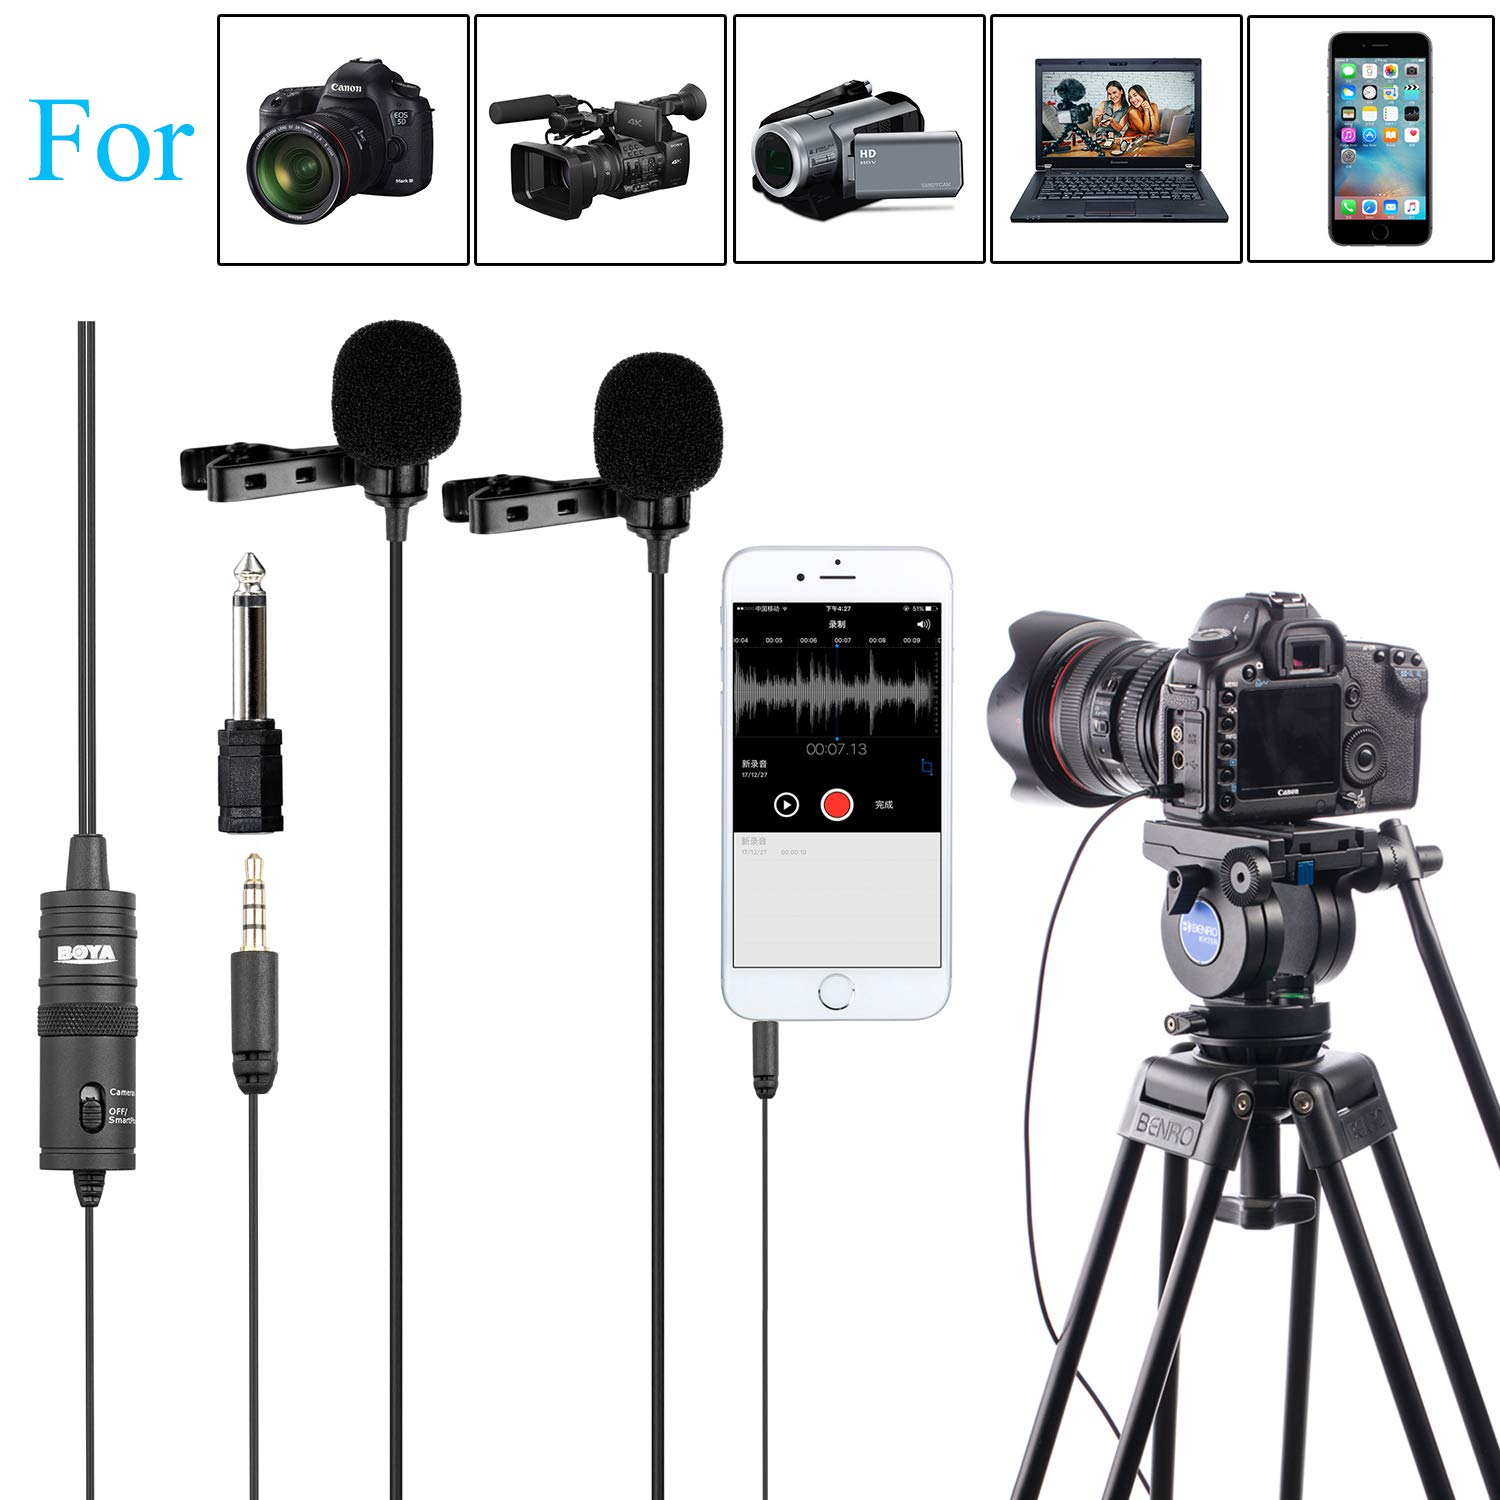 PC Microphone Dual-Head Lavalier for Smartphones Cameras, 157 Inches/4m BOYA Universal Mic with 1/8 Adapter for iPhone 11 X 8 7 Canon DSLR Camcorders Audio Recorder Podcast YouTube Video Livestream by BOYA